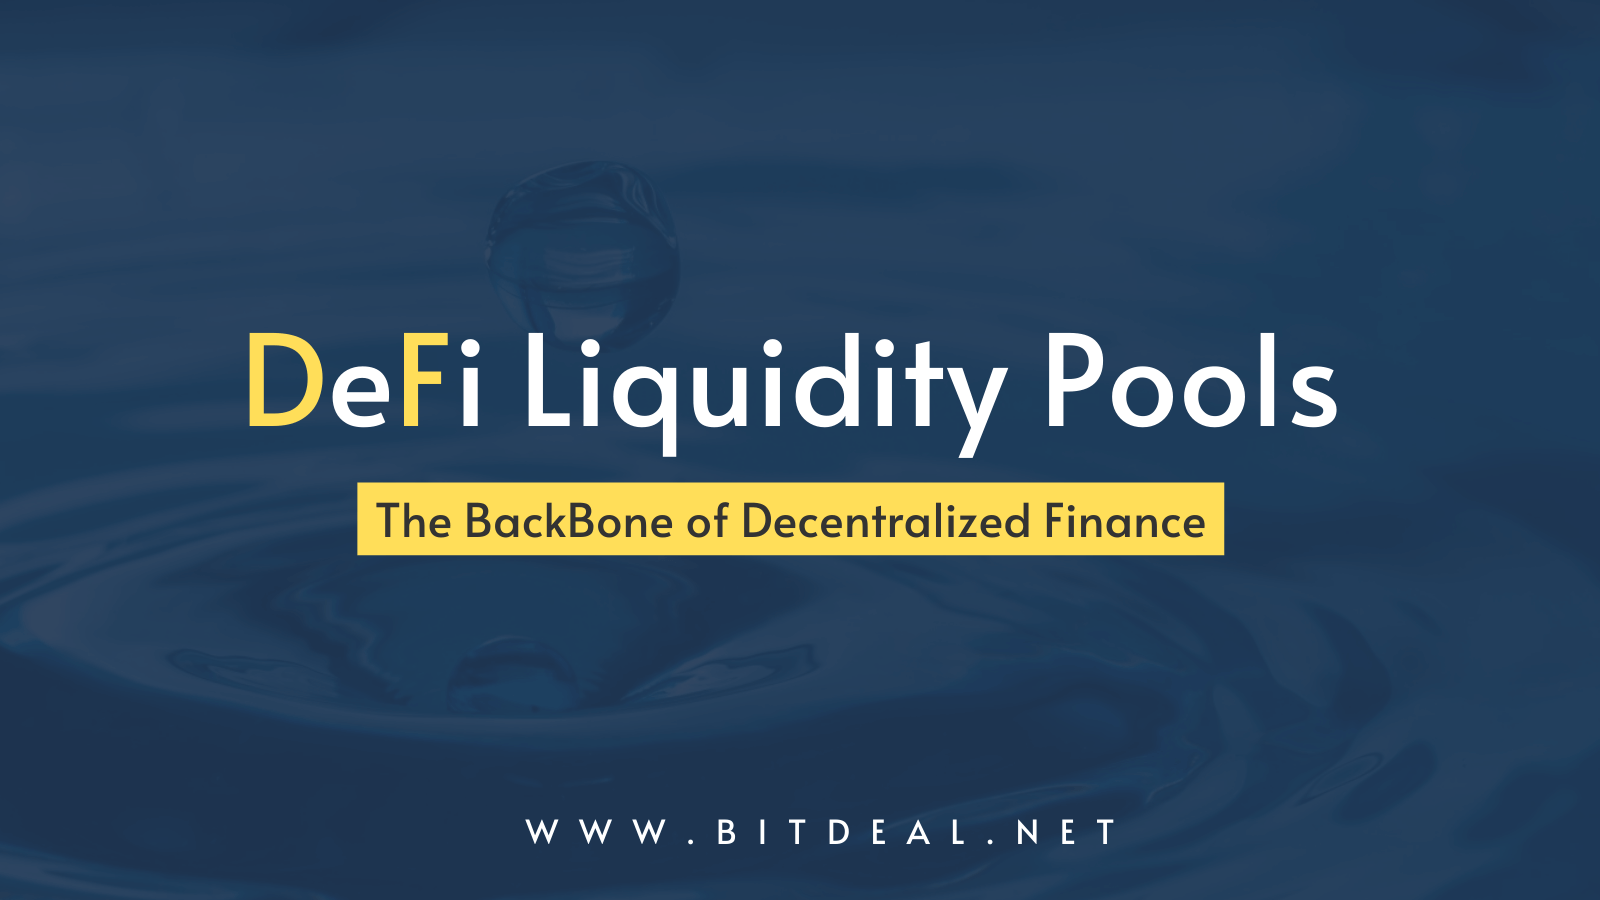 DeFi Liquidity Pools - The Backbone of Decentralized Finance